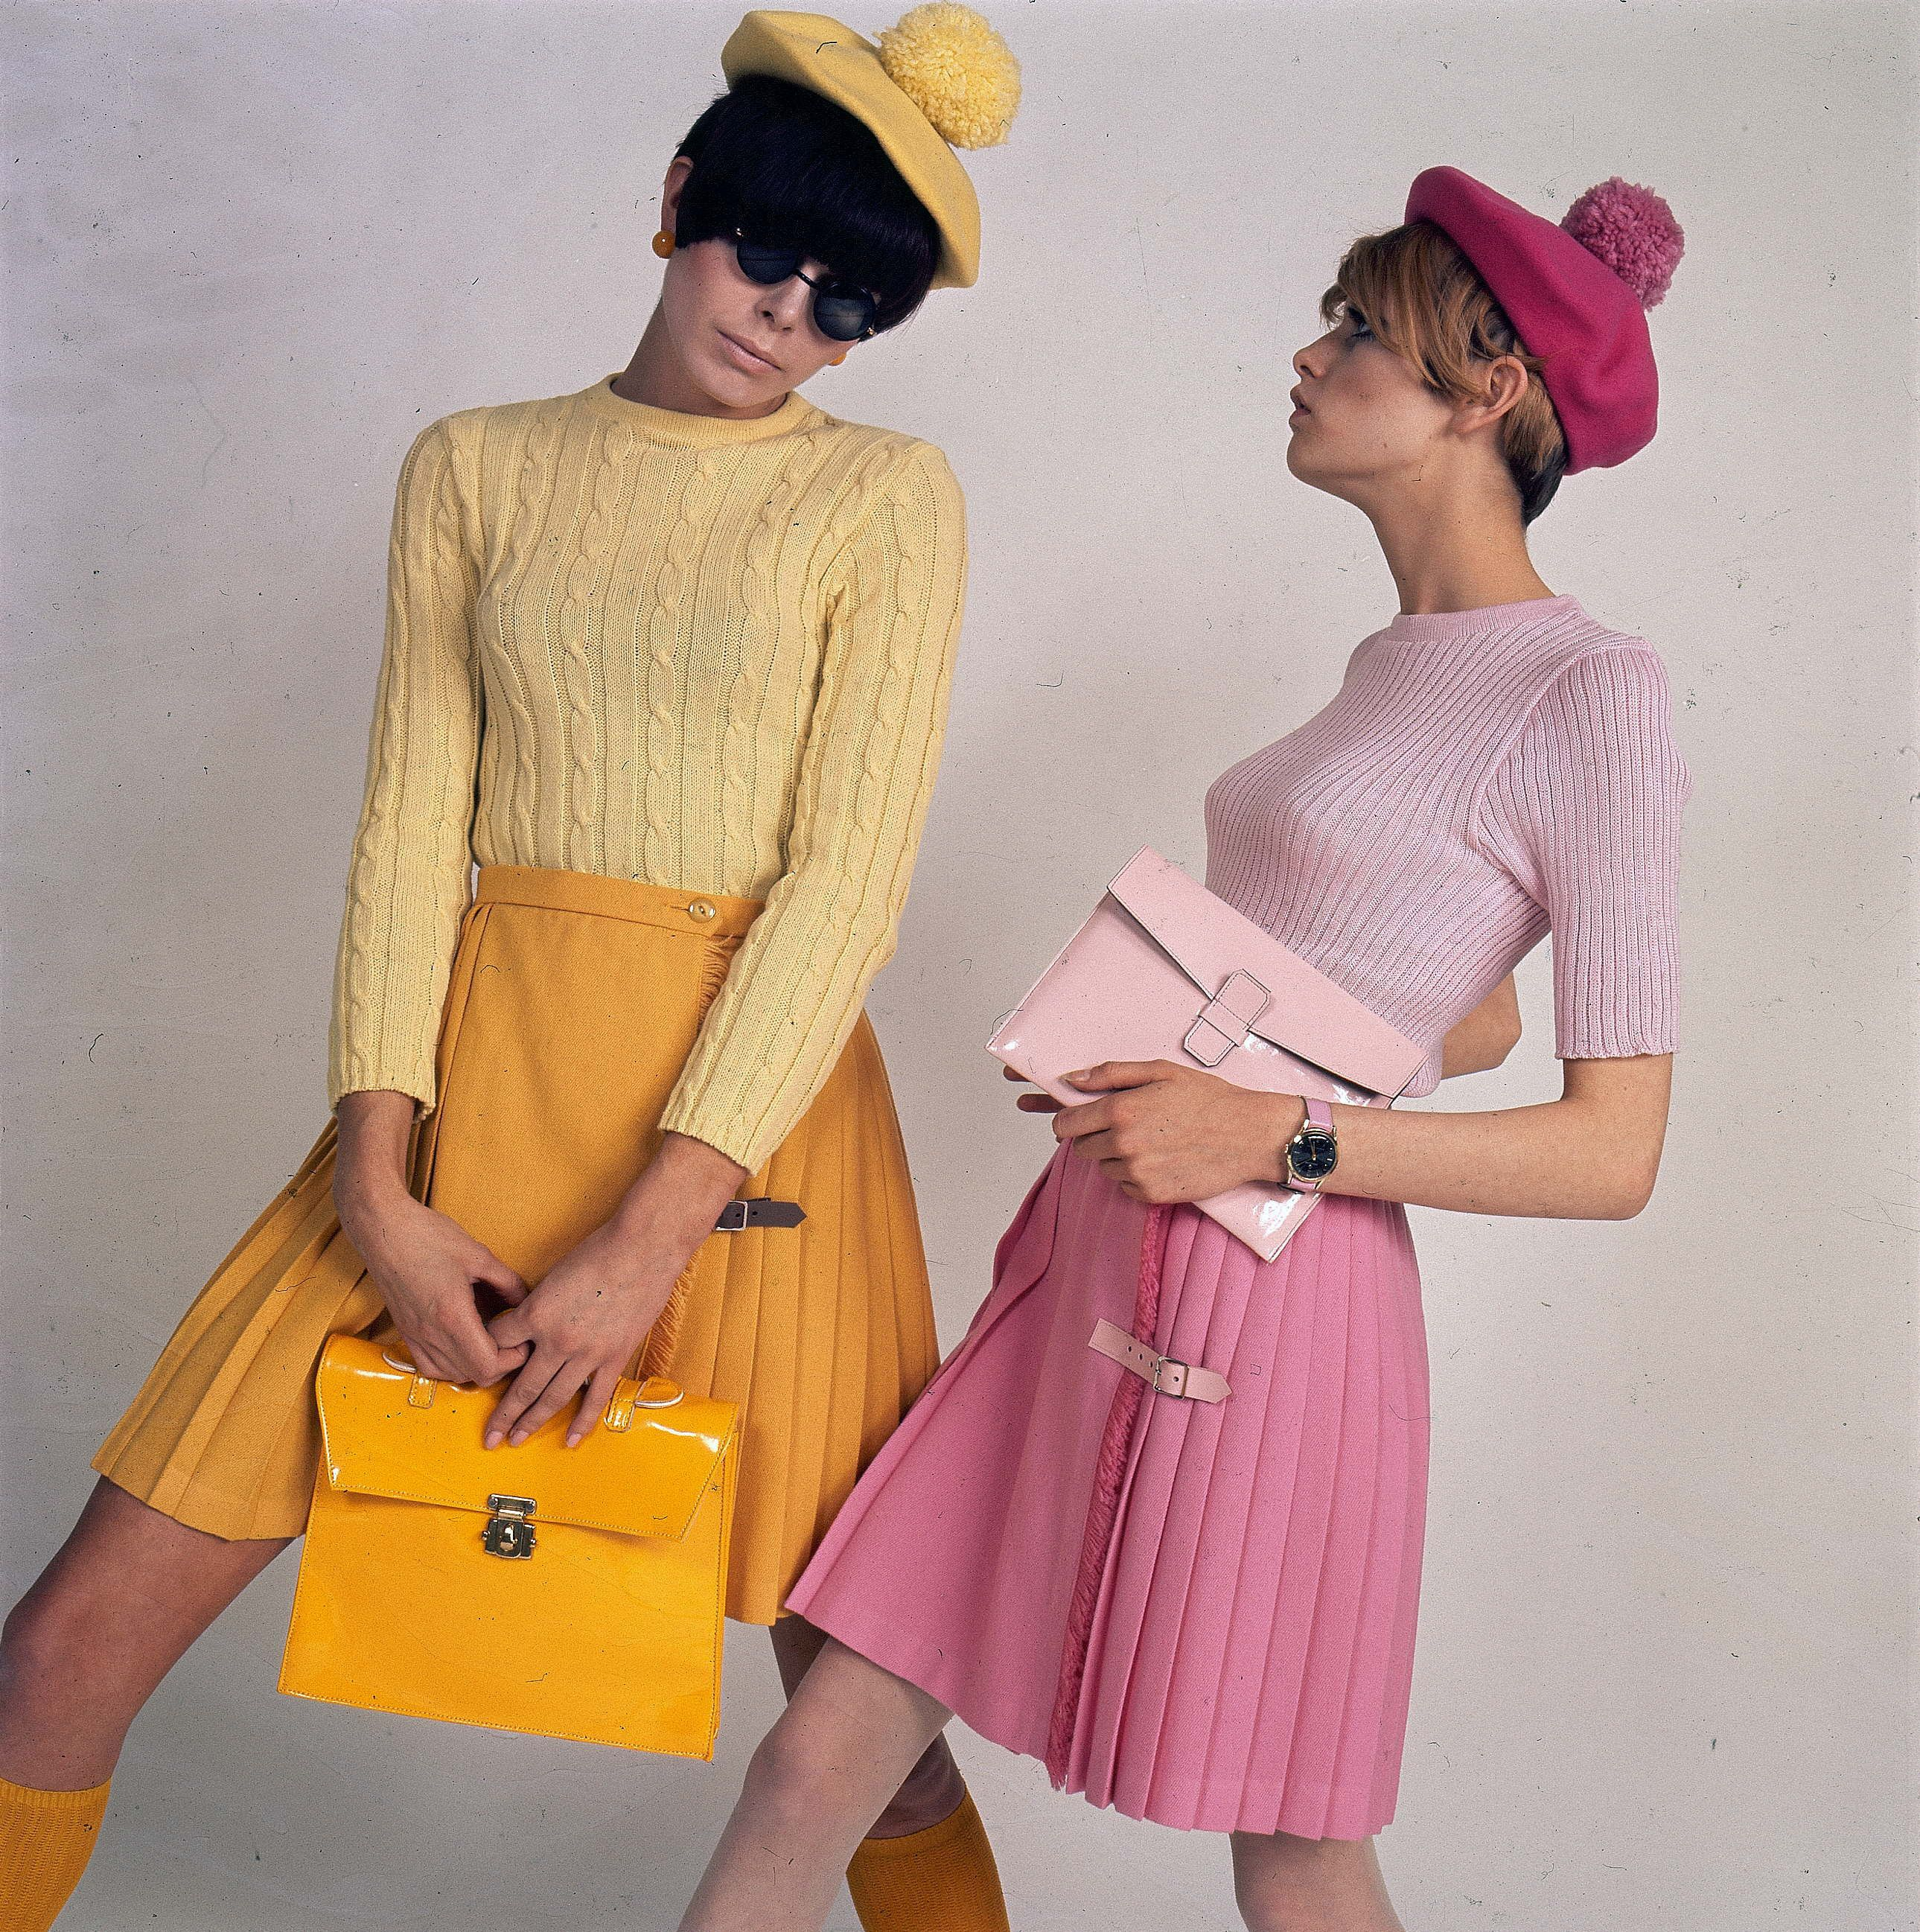 Fashions in the 60s 99